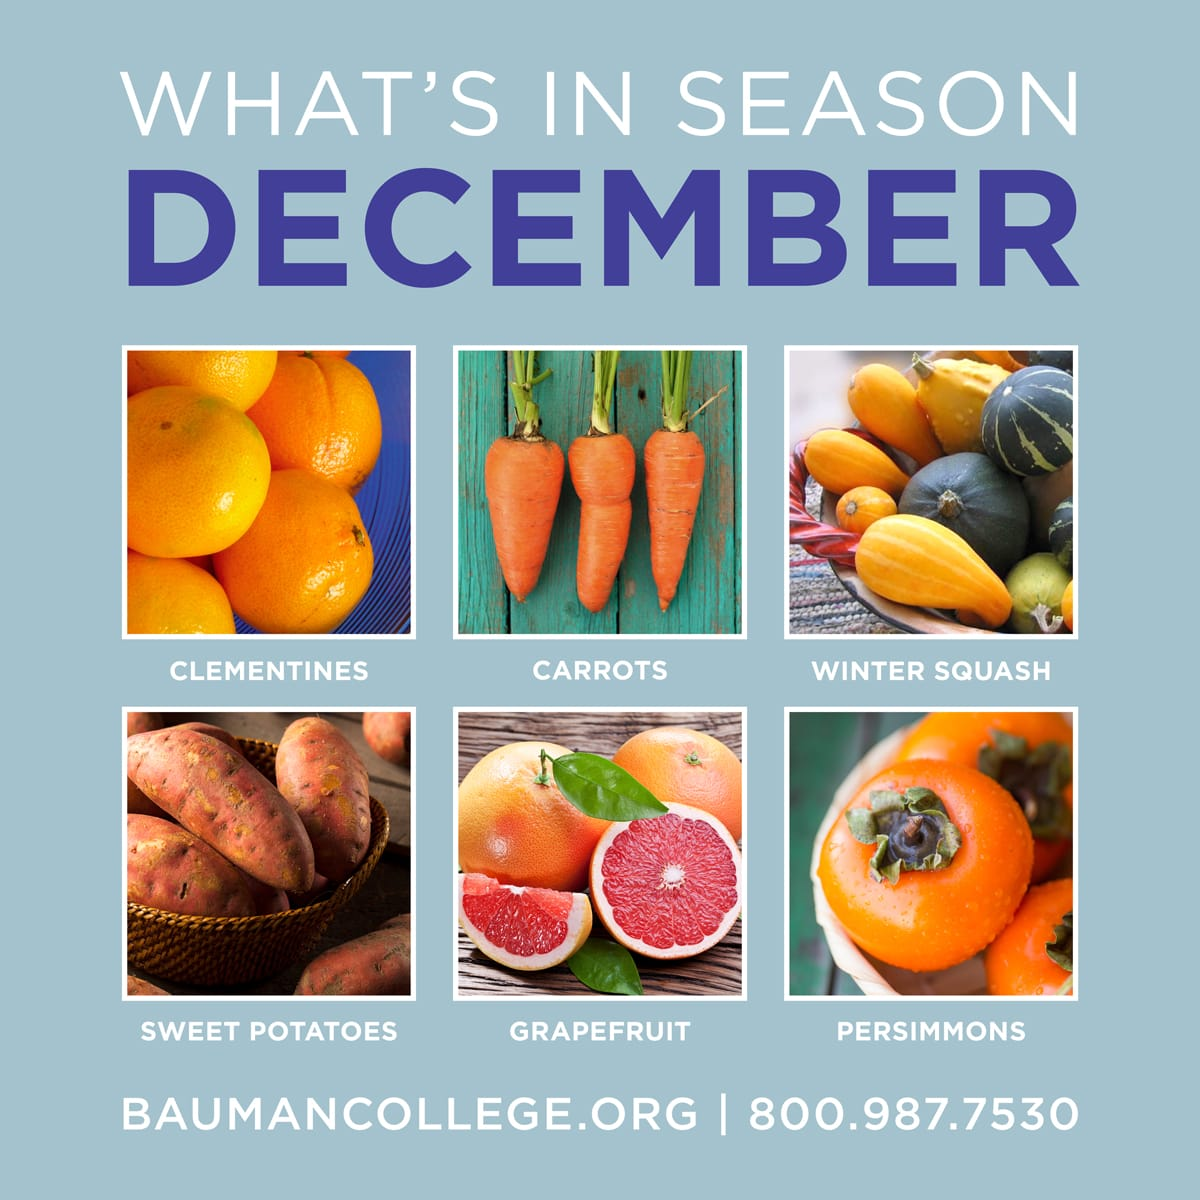 whats_in_season_dec_1200x1200